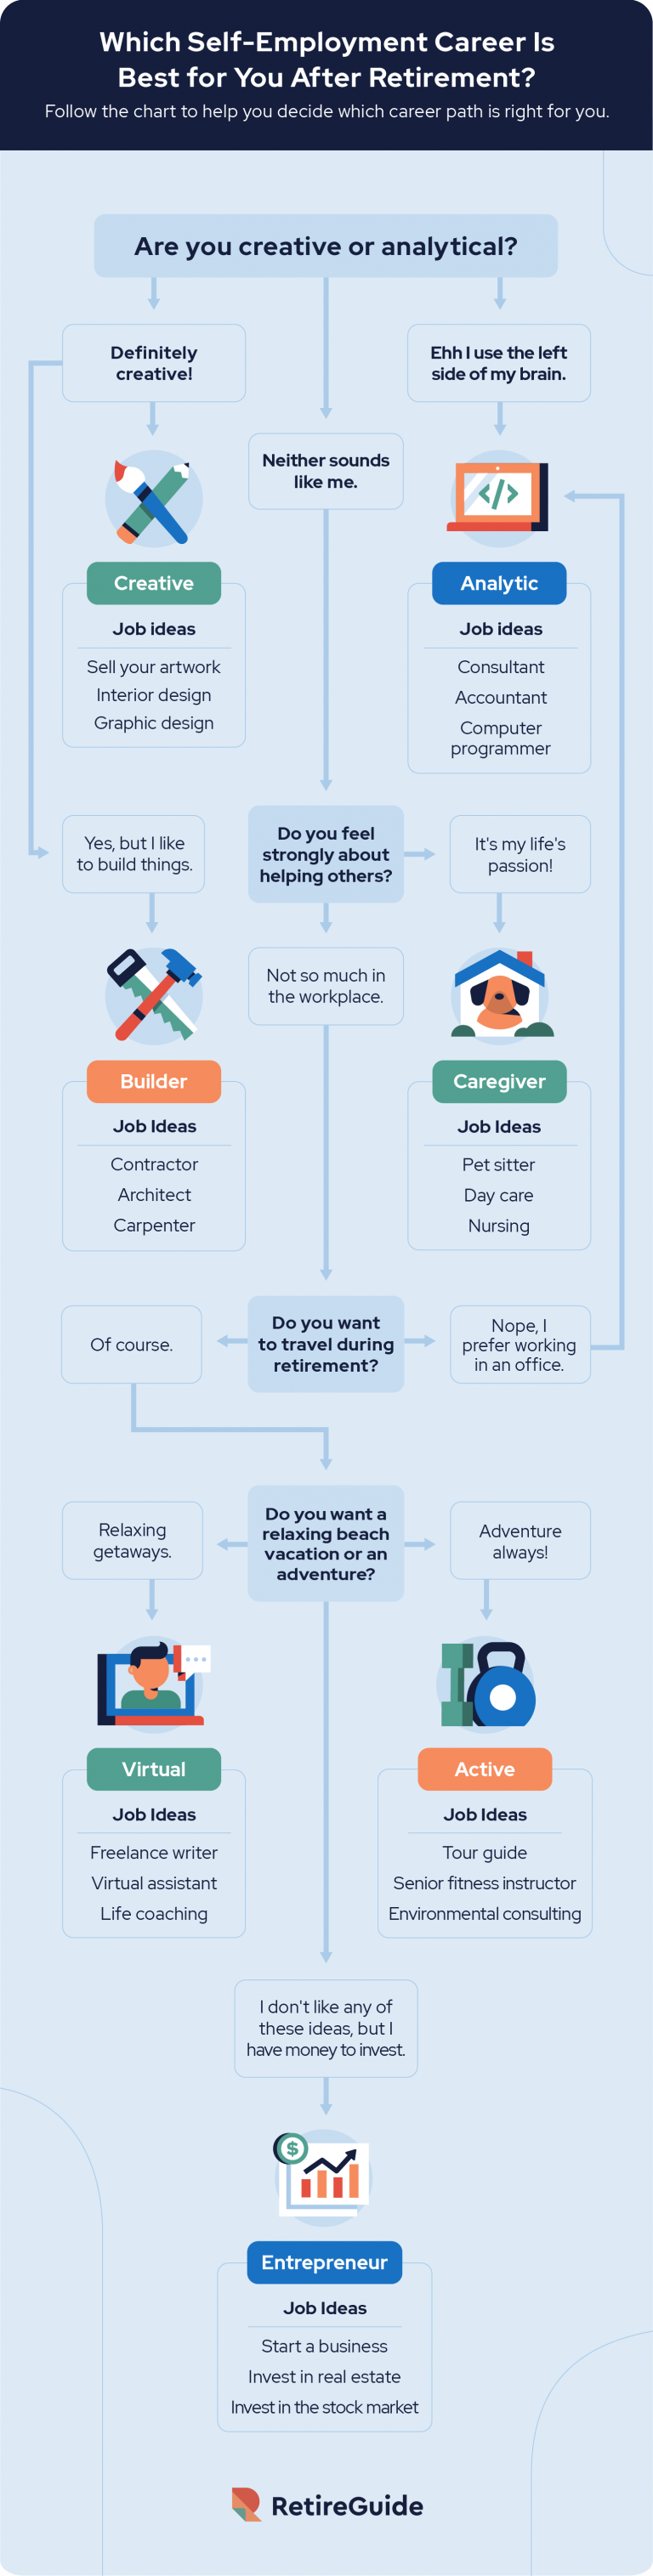 Which self employment career is best for you after retirement?